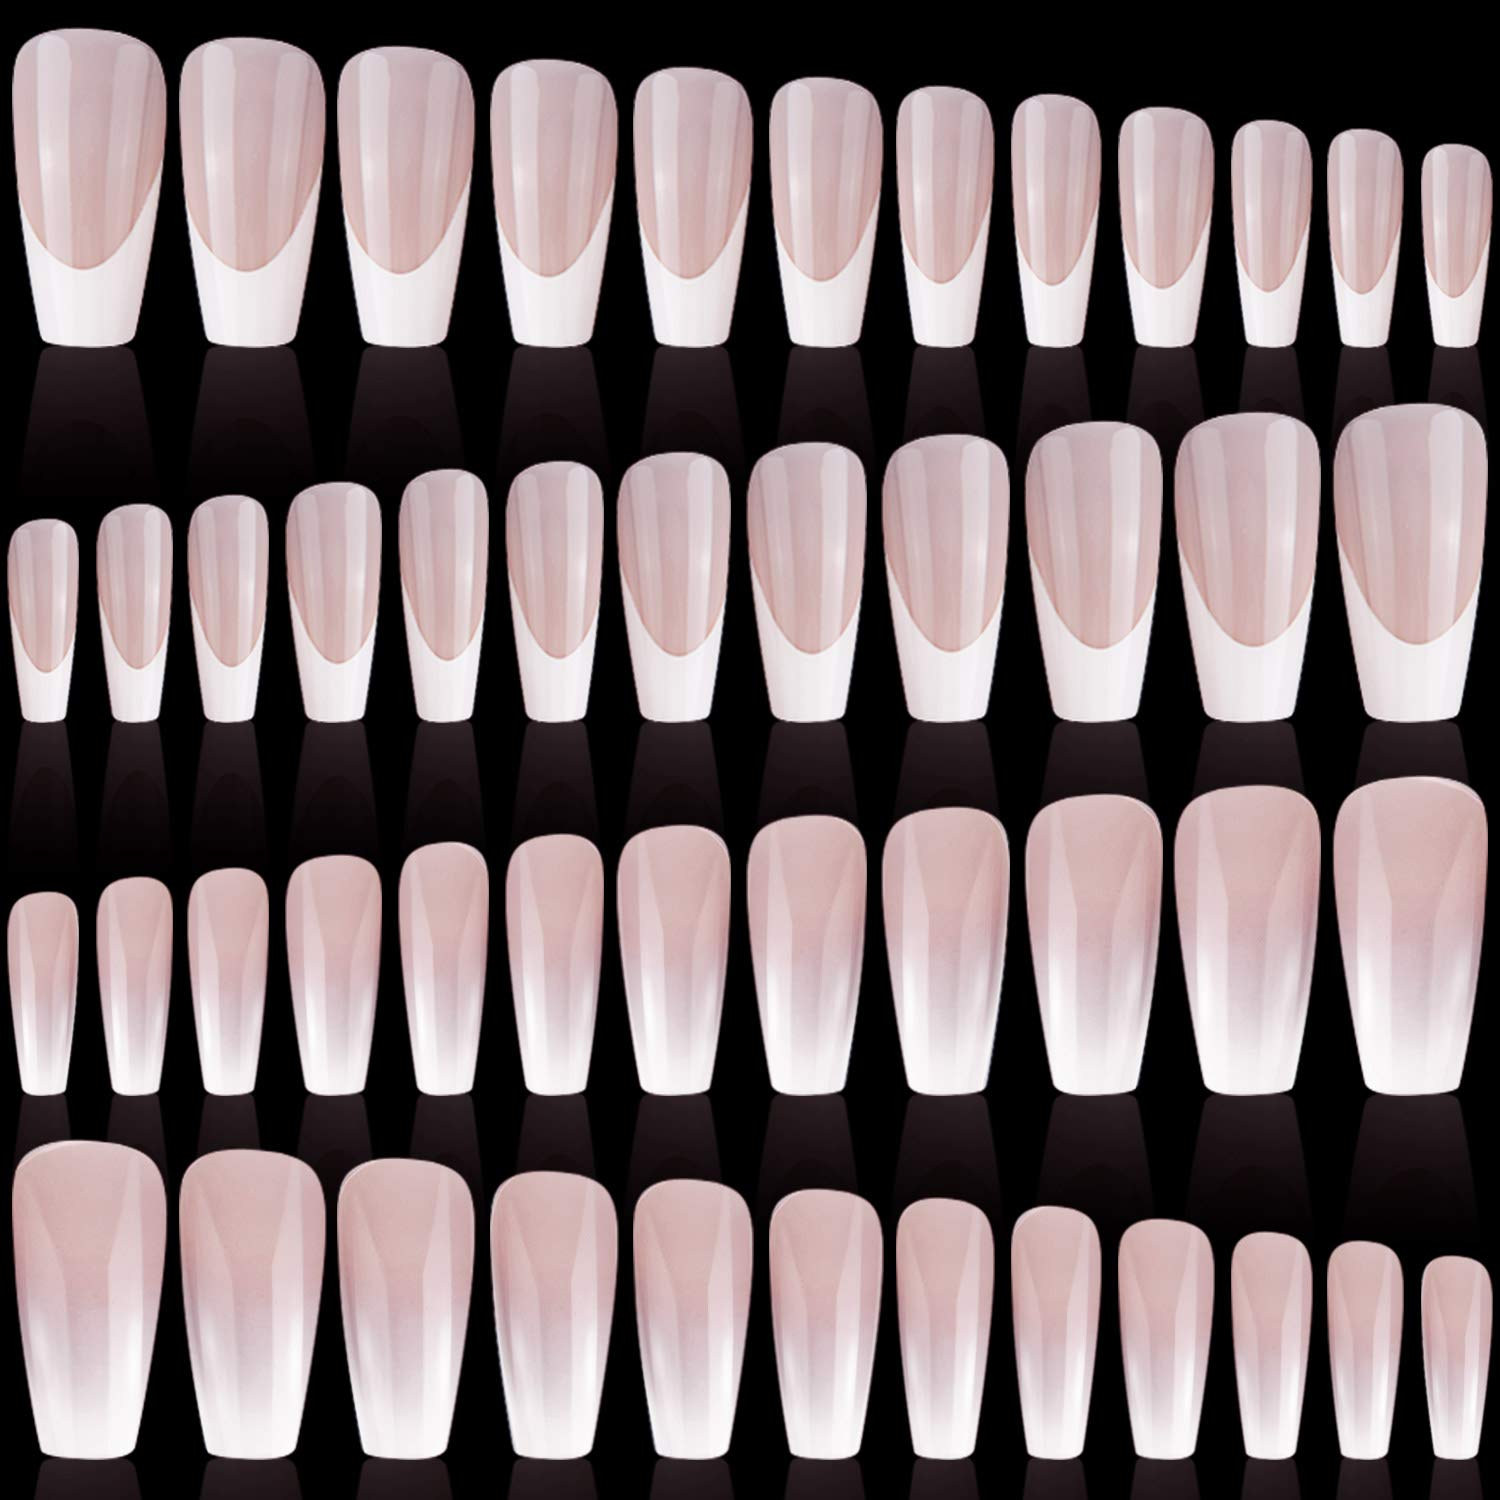 96 Pieces 4 Sets Long Low price Ballerina Nails Nail New life Pattern Coffin Art Co